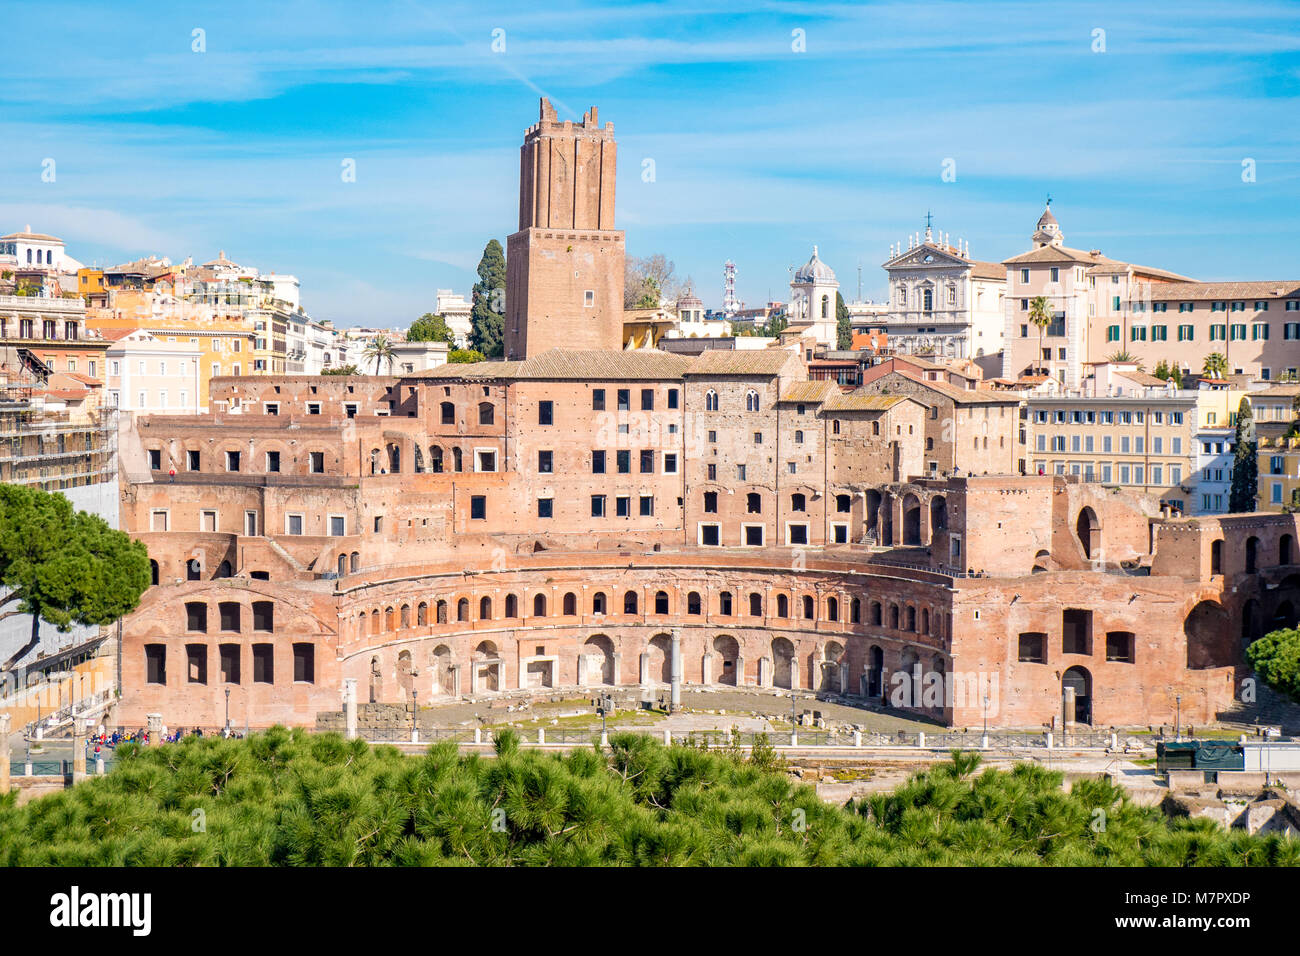 Aerial view of Trajan's Market in Rome, Italy - Stock Image